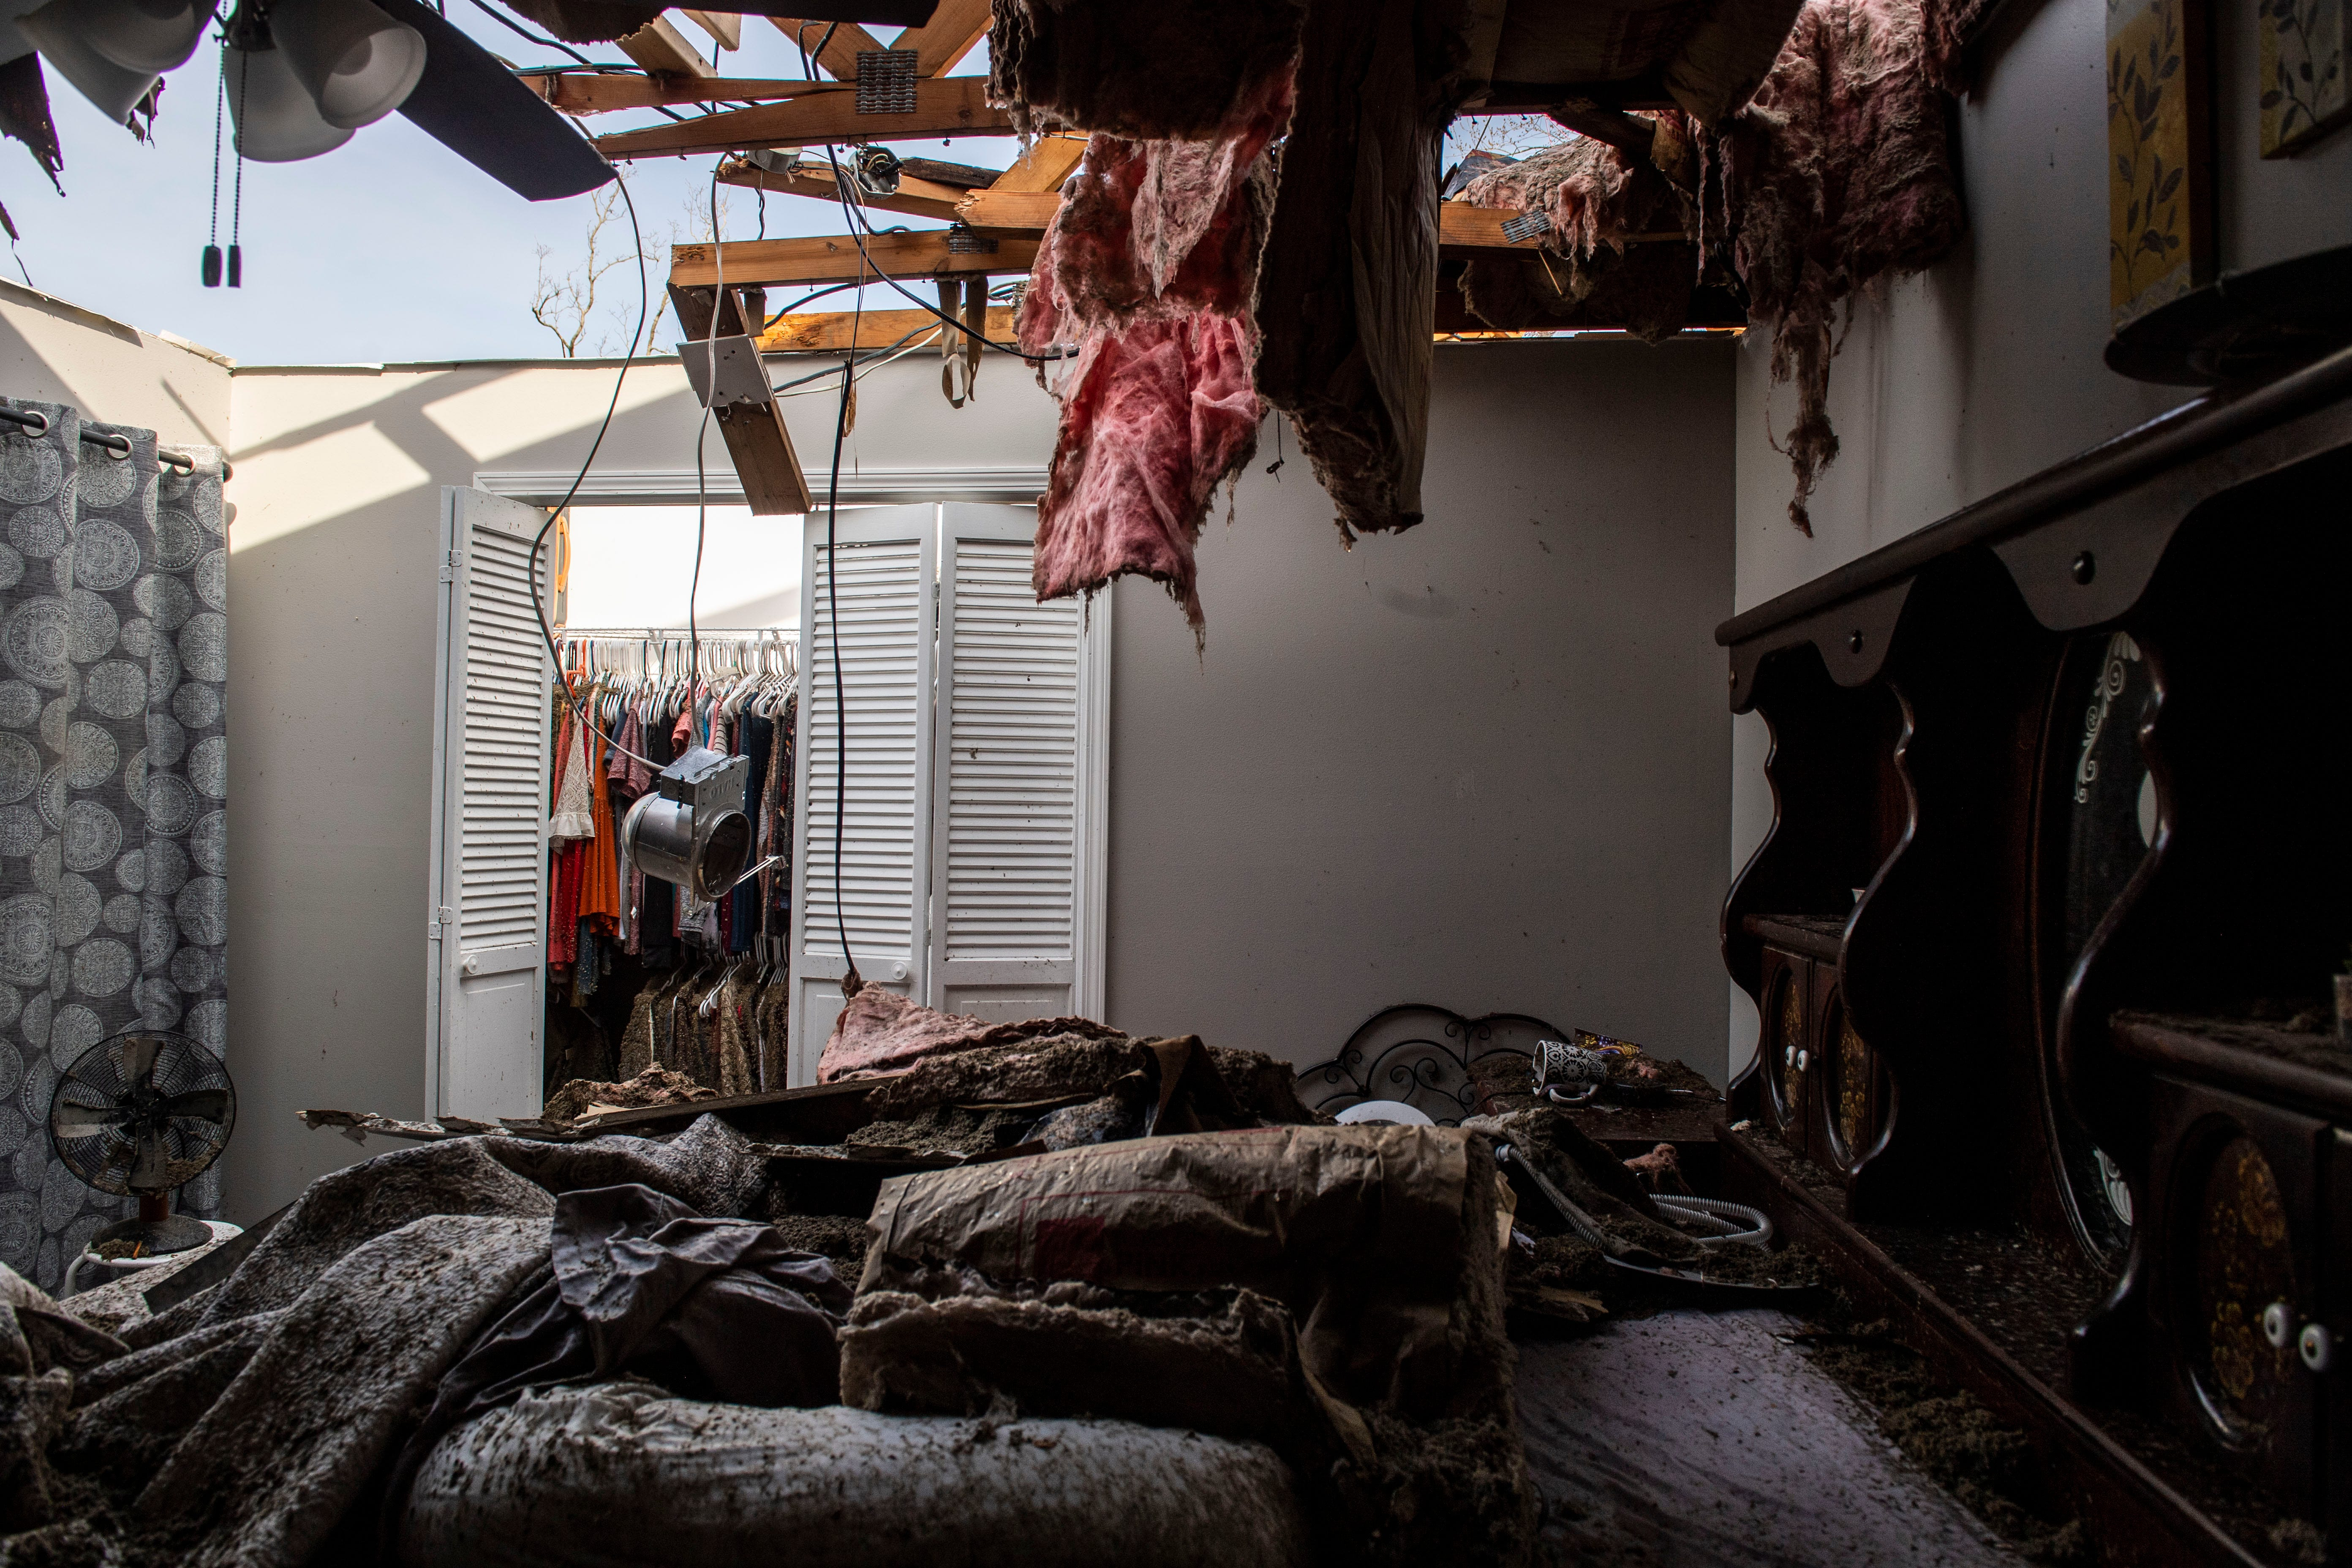 Jim and Michelle Mullikin's home in Bradford, Tennessee, was one of the first to be damaged by the storm system that rolled through the state late Monday night. Less than two hours later and more than 100 miles to the east, the storm would spawn a tornado that carved a path of devastation through several counties.